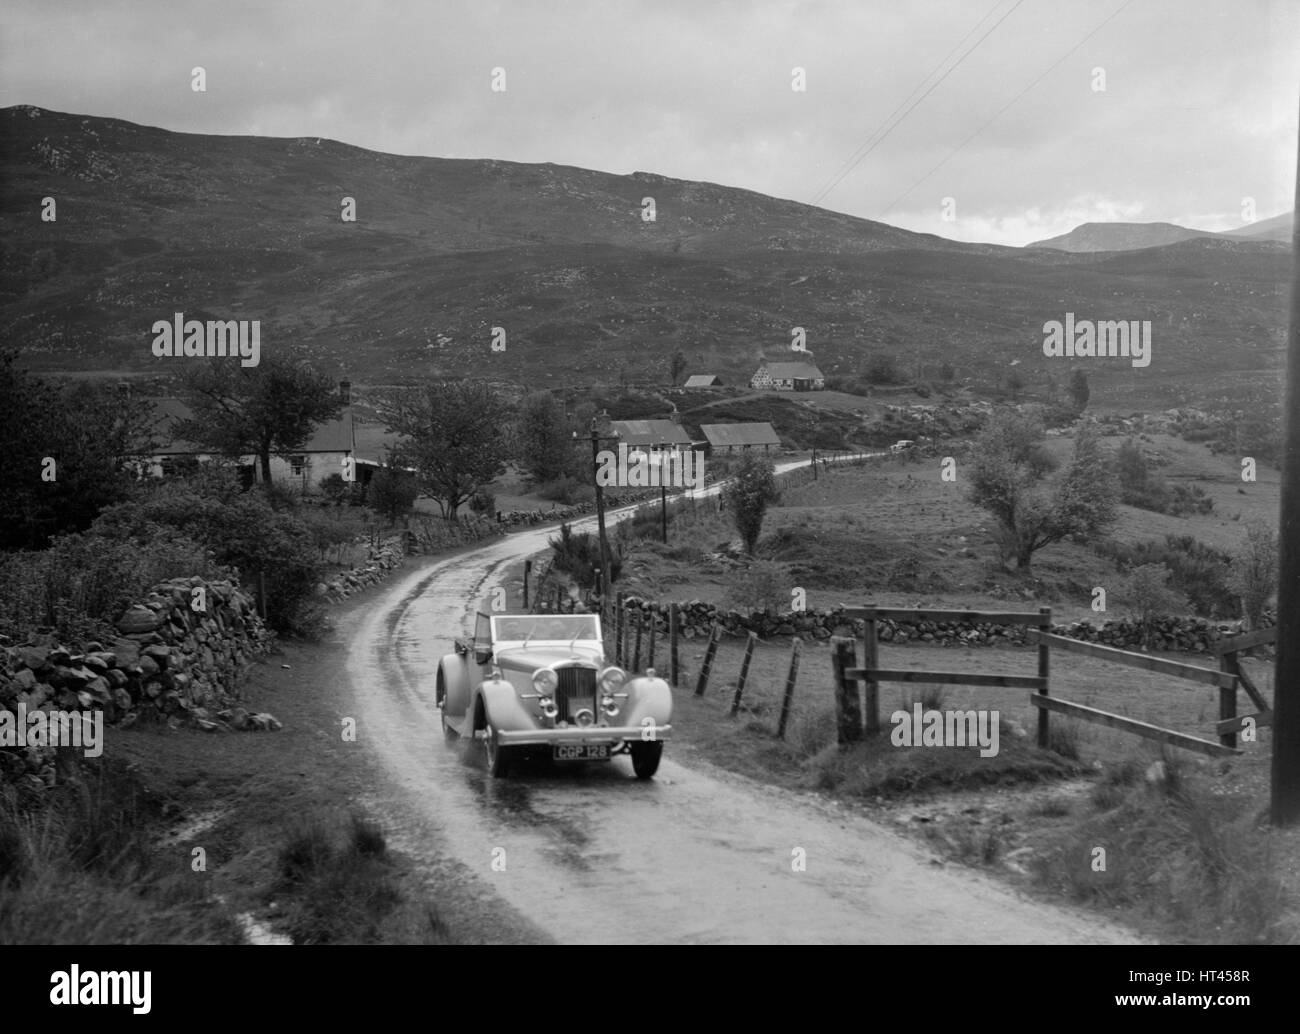 Talbot of D Melvin competing inthe RSAC Scottish Rally, 1936. Artist: Bill Brunell. - Stock Image